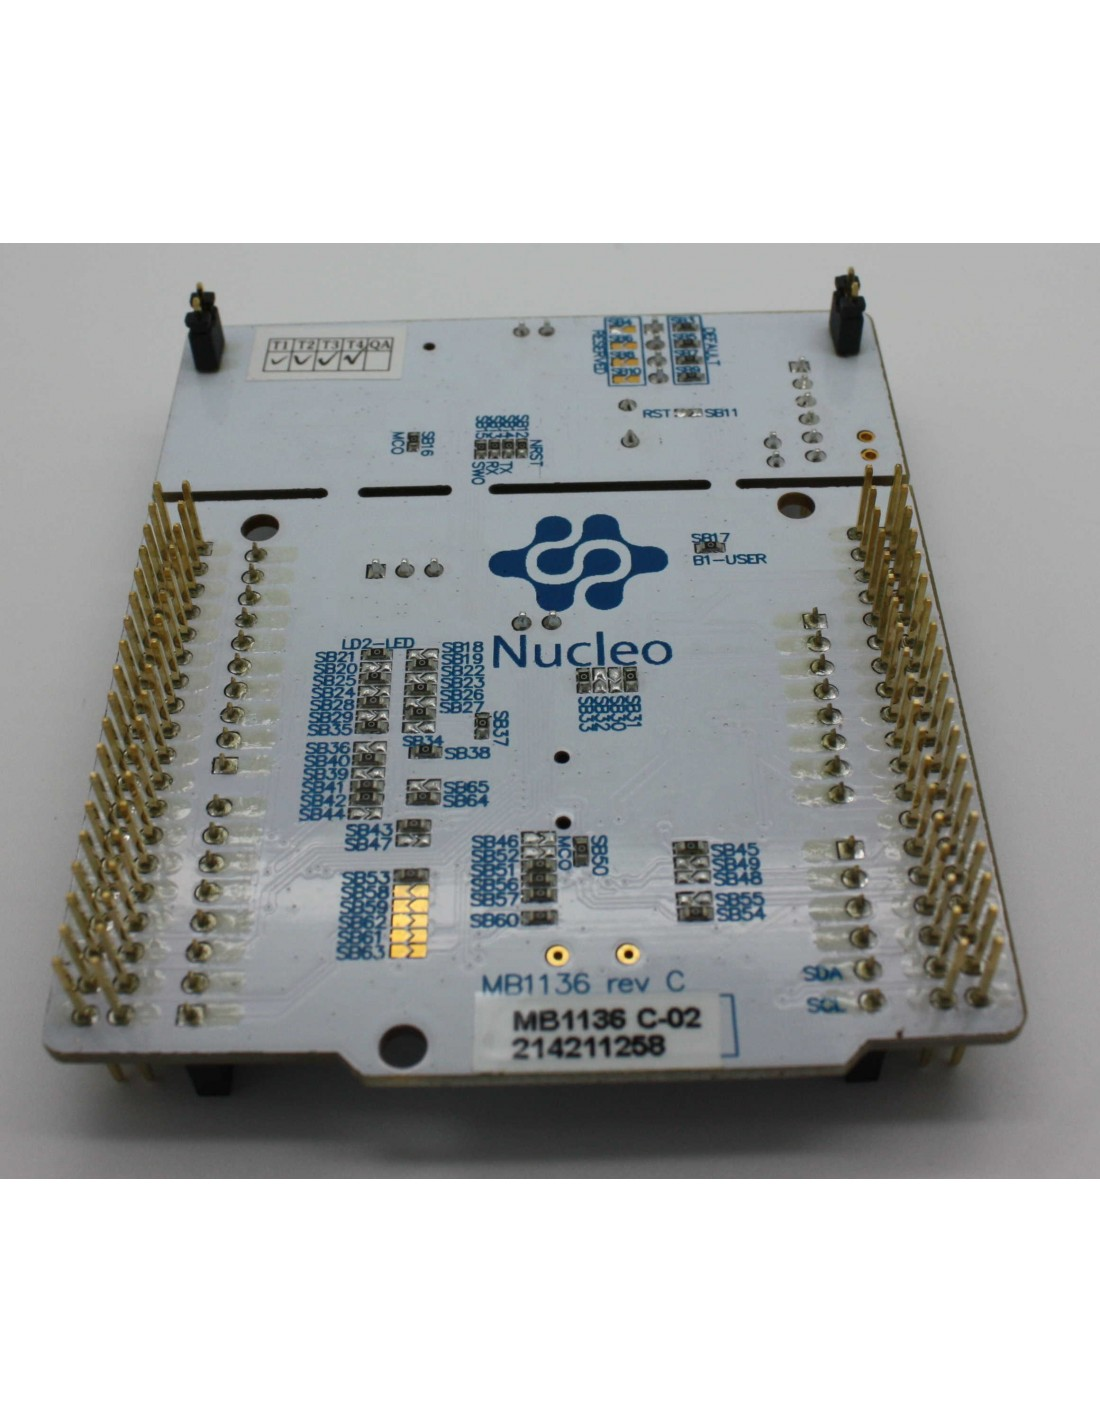 NUCLEO-F411RE (STM32 Nucleo development board for STM32 F4